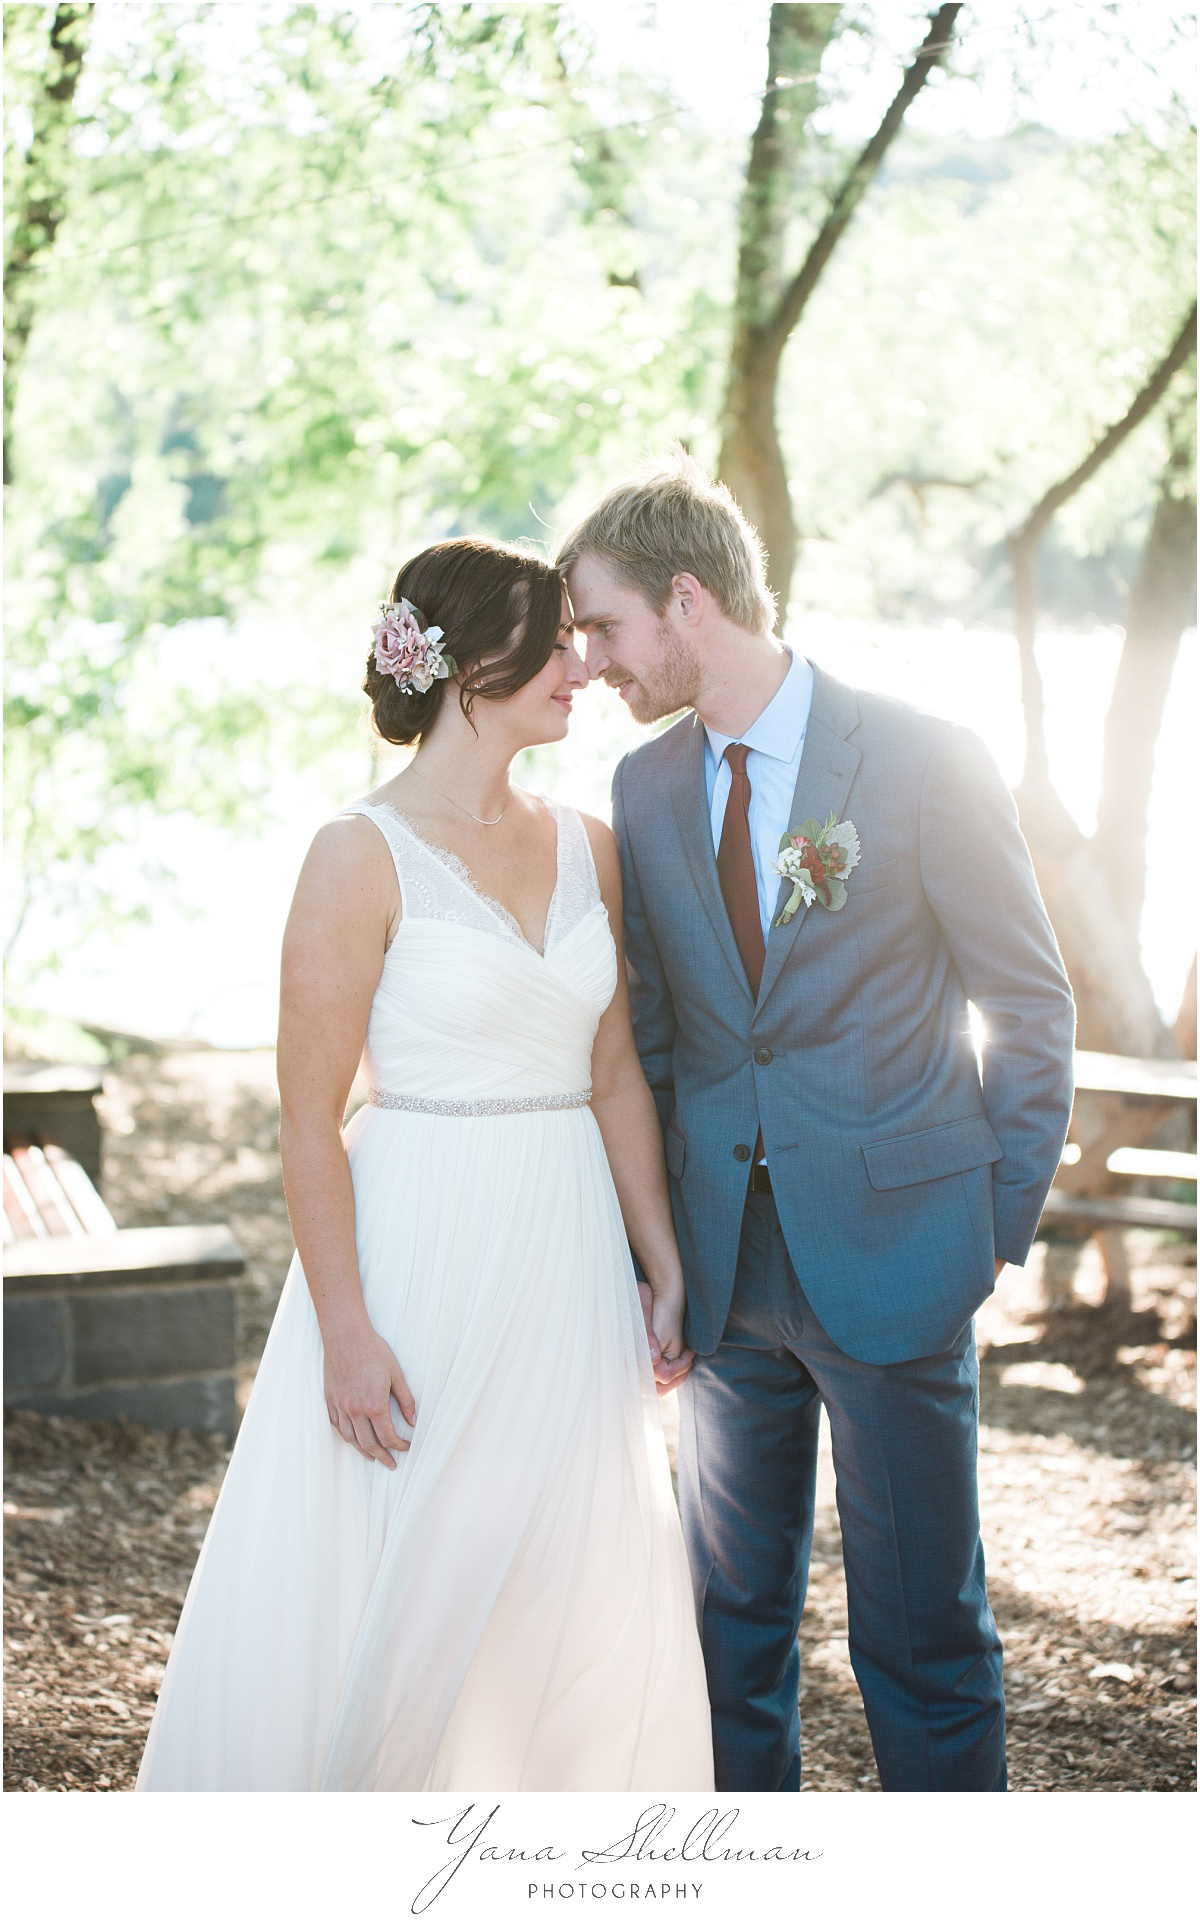 darby-barn-wedding-photos-by-darby-wedding-photographer-kellyben-romantic-and-fun-wedding-photos